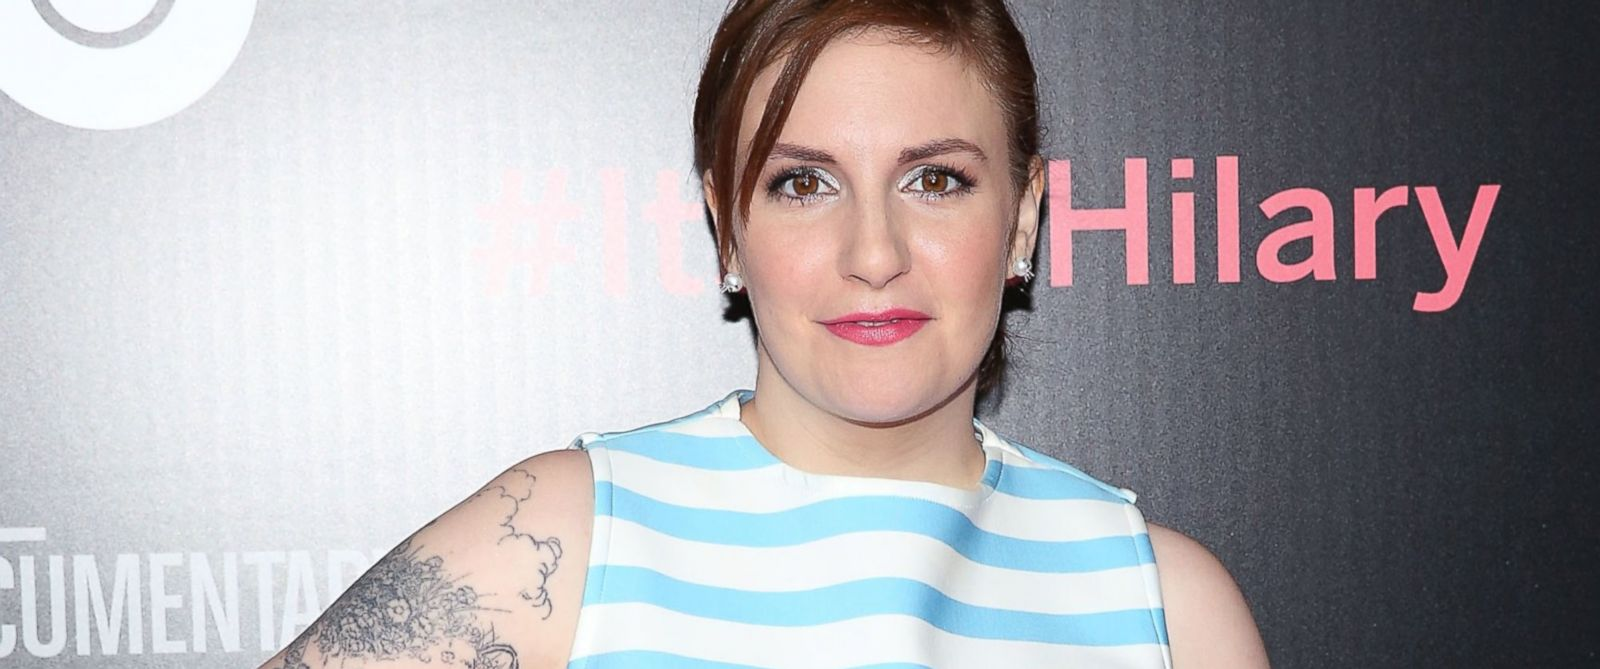 lena dunham interview youtube